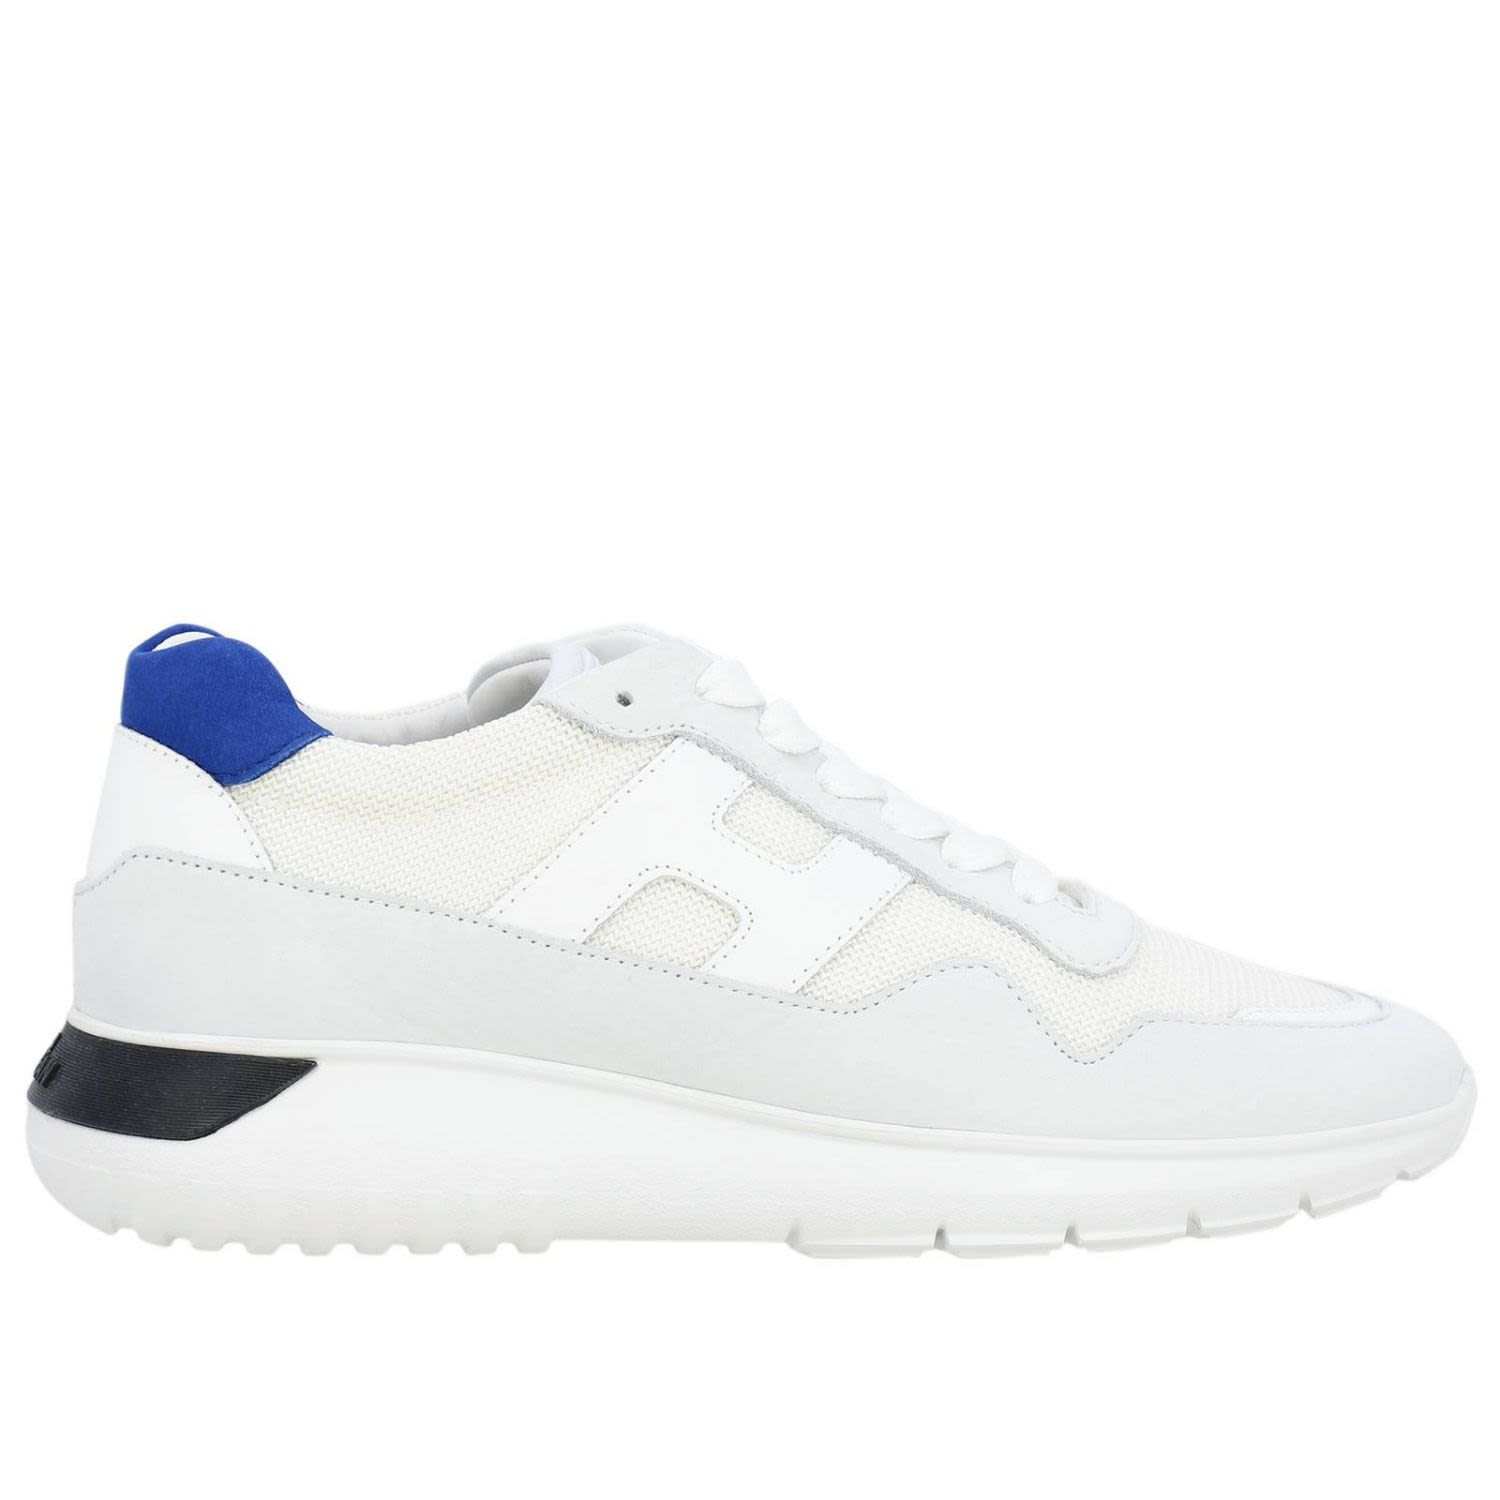 Hogan Sneakers Shoes Men Hogan